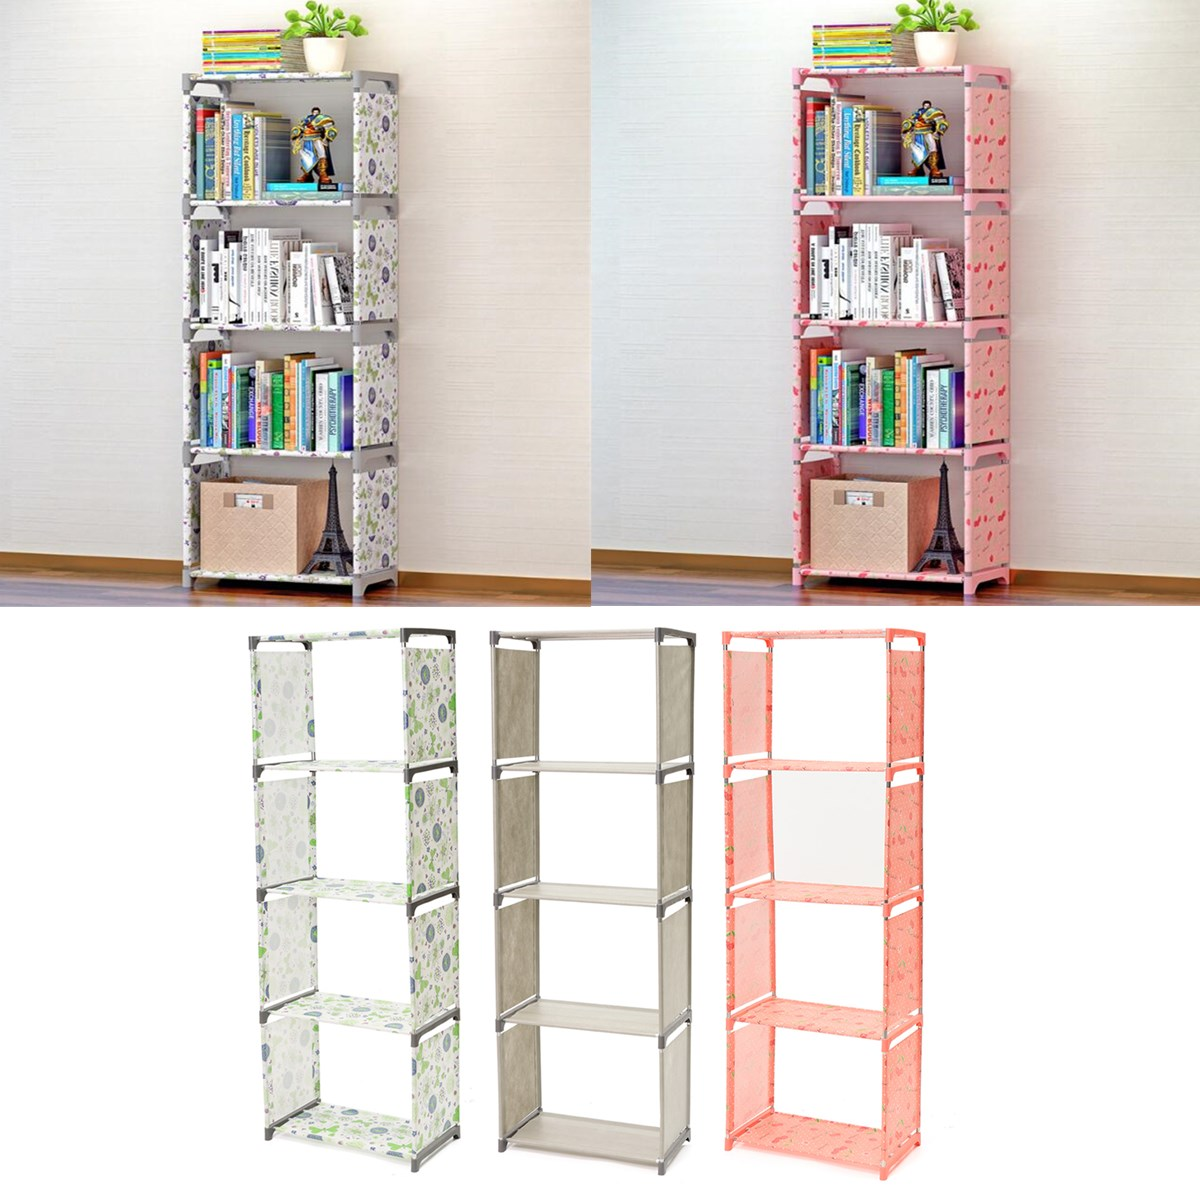 Bookcase Cabinet Us 25 4 27 Off Multi Tier Bookshelf Storage Shelf For Books Plants Sundries Diy Combination Cabinet Furniture Fabric Children Bookcase 4 Layer In